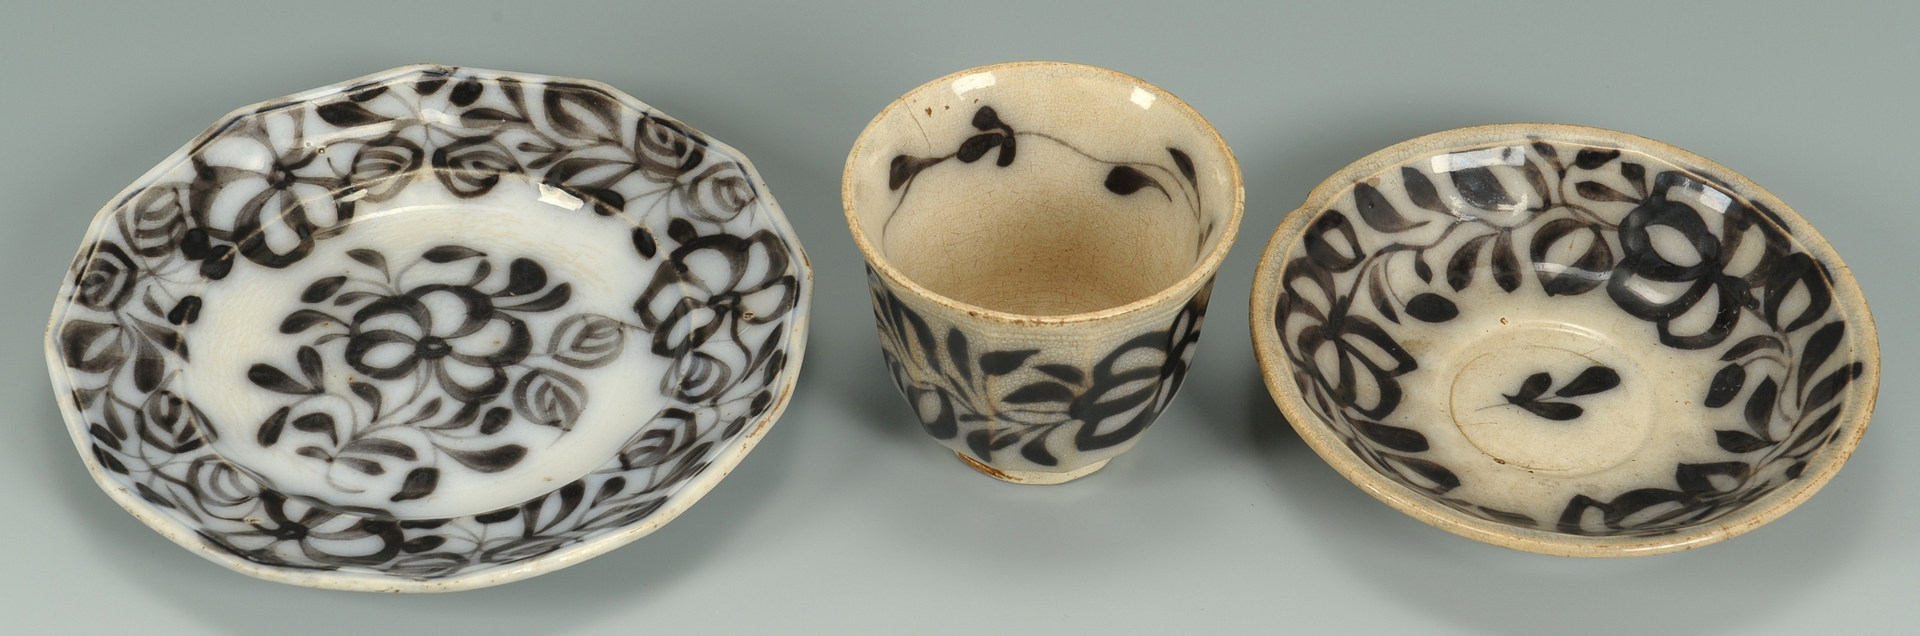 Lot 493: Transfer ware bowl, pitcher and dinnerware